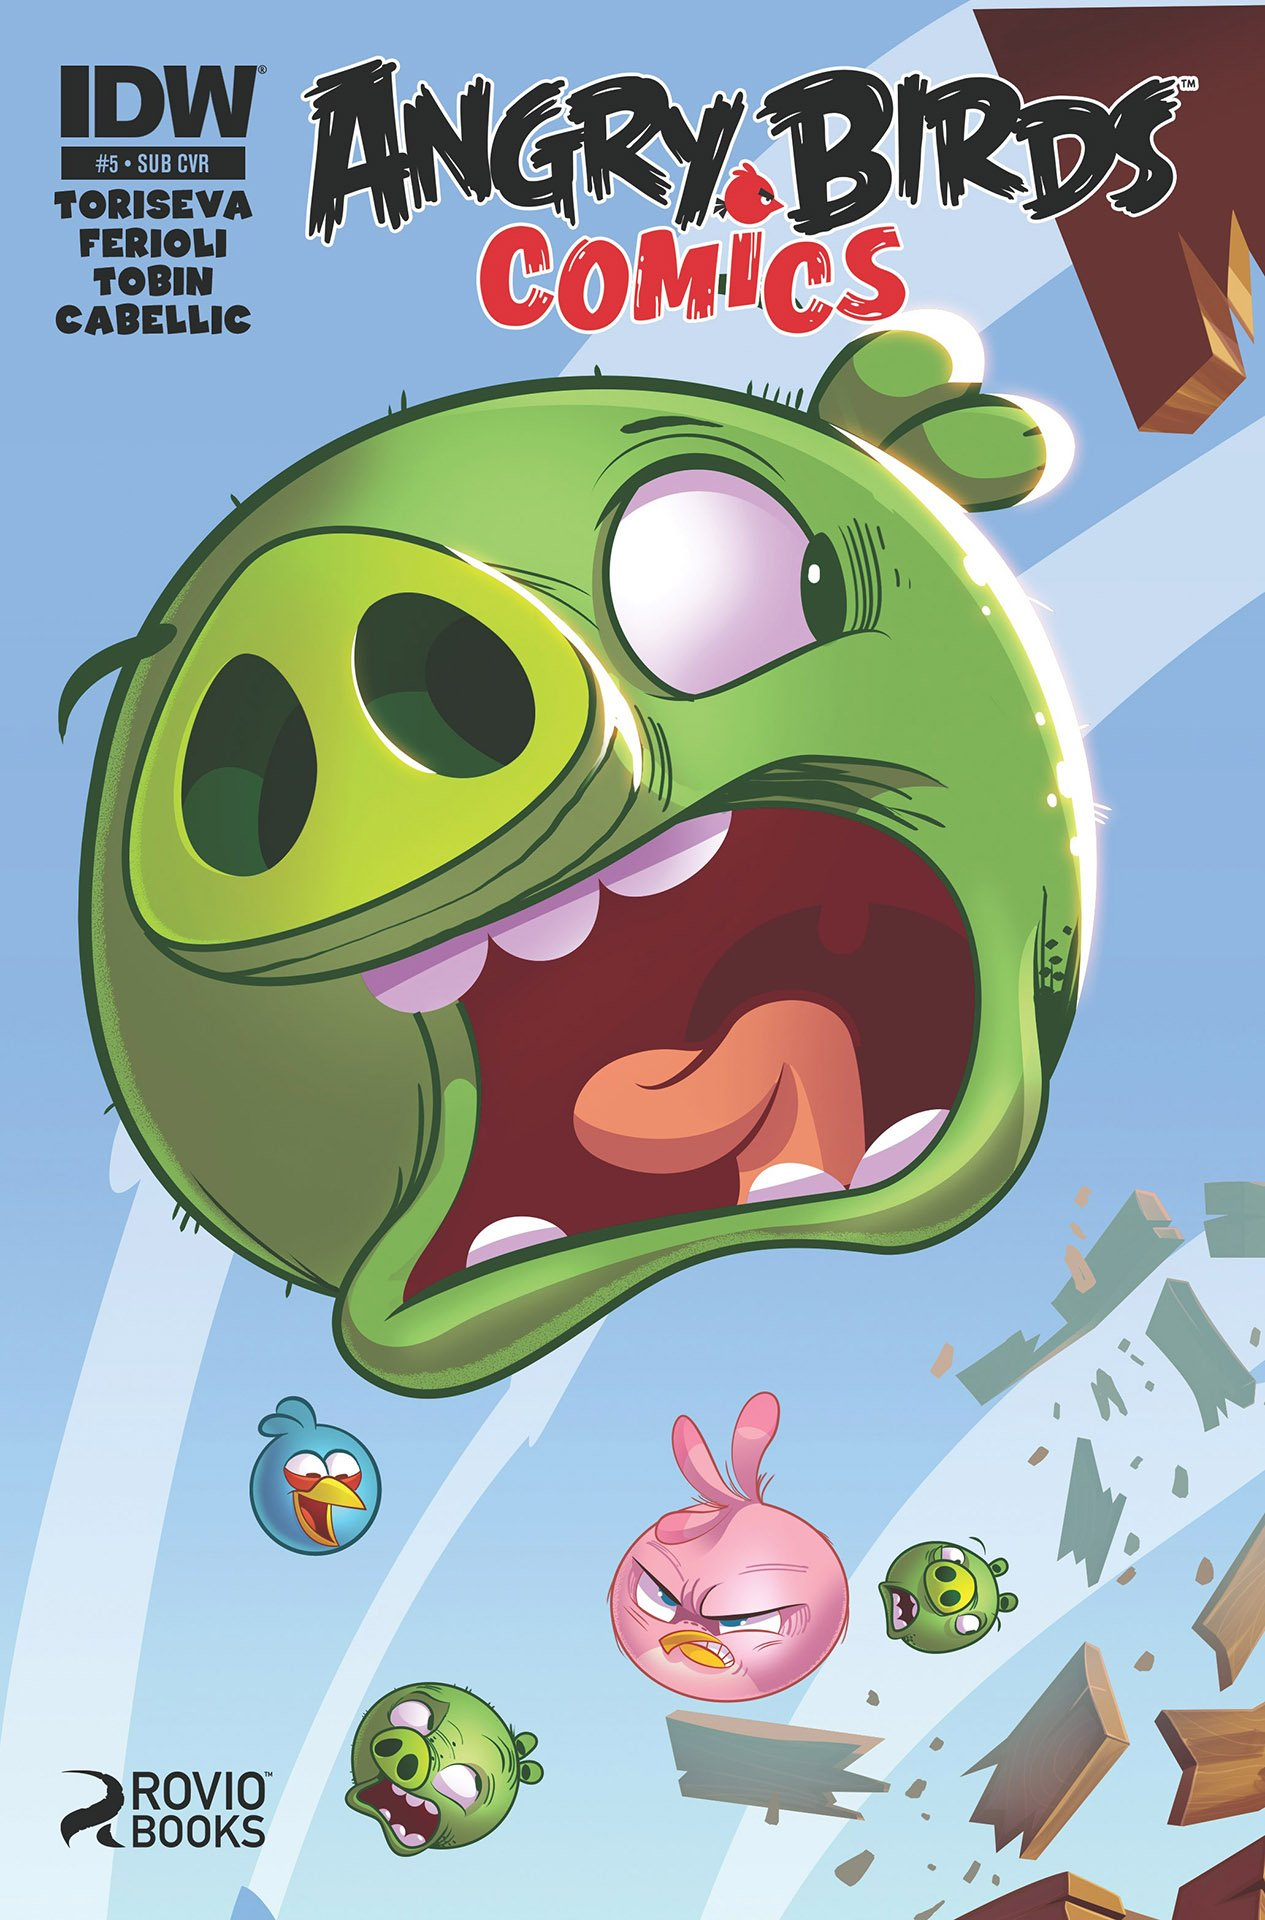 Angry Birds Comics 05 (October 2014) (subscriber cover)a